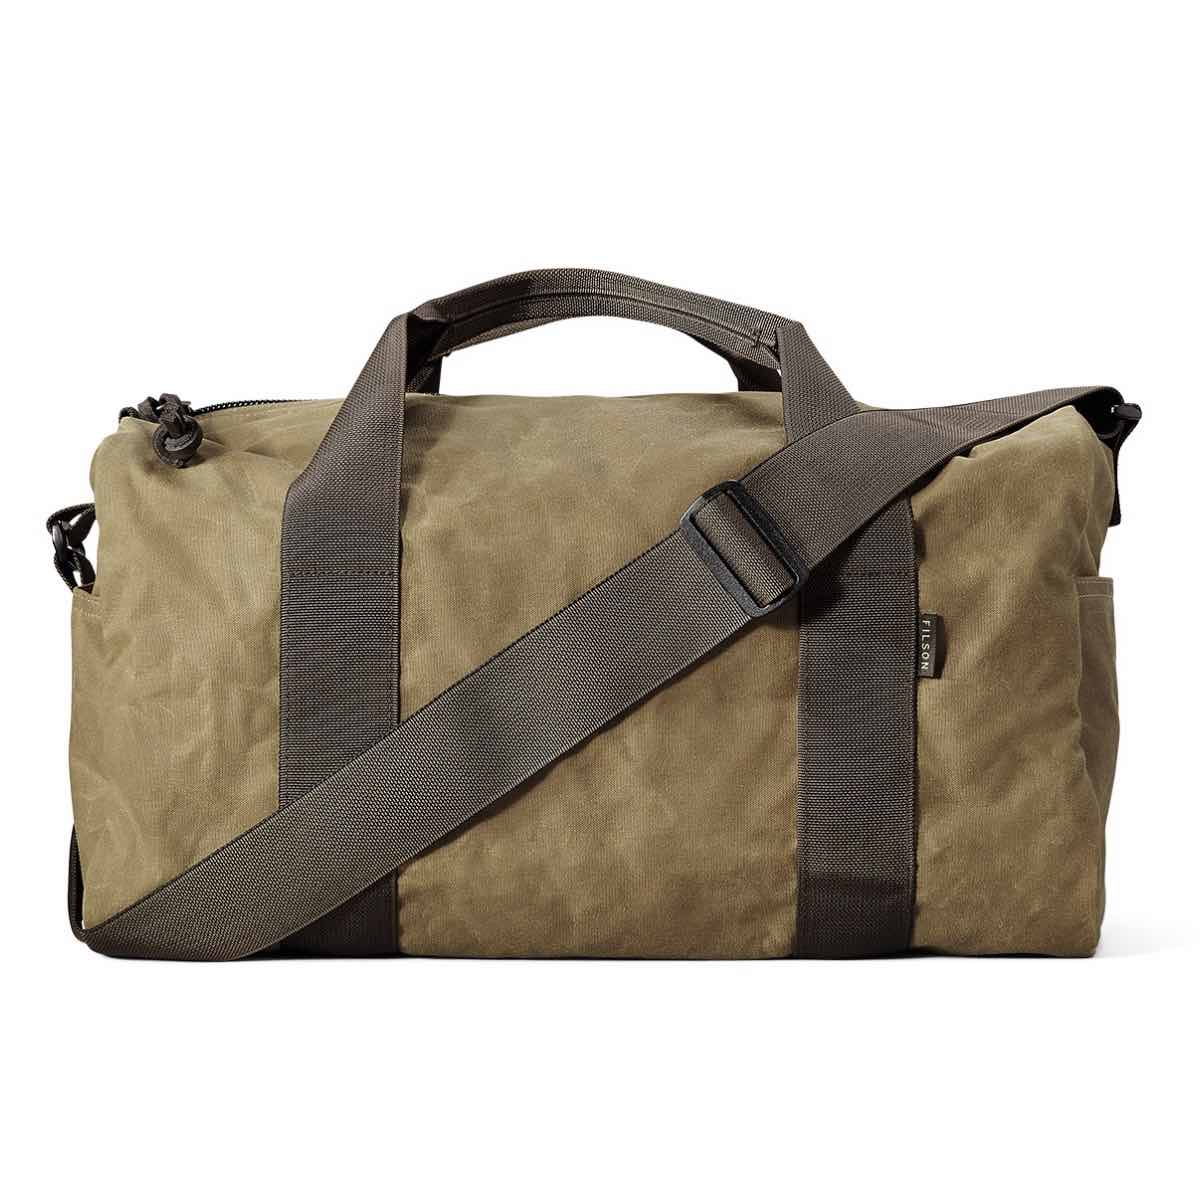 FILSON FIELD DUFFLE  BAG - 36L